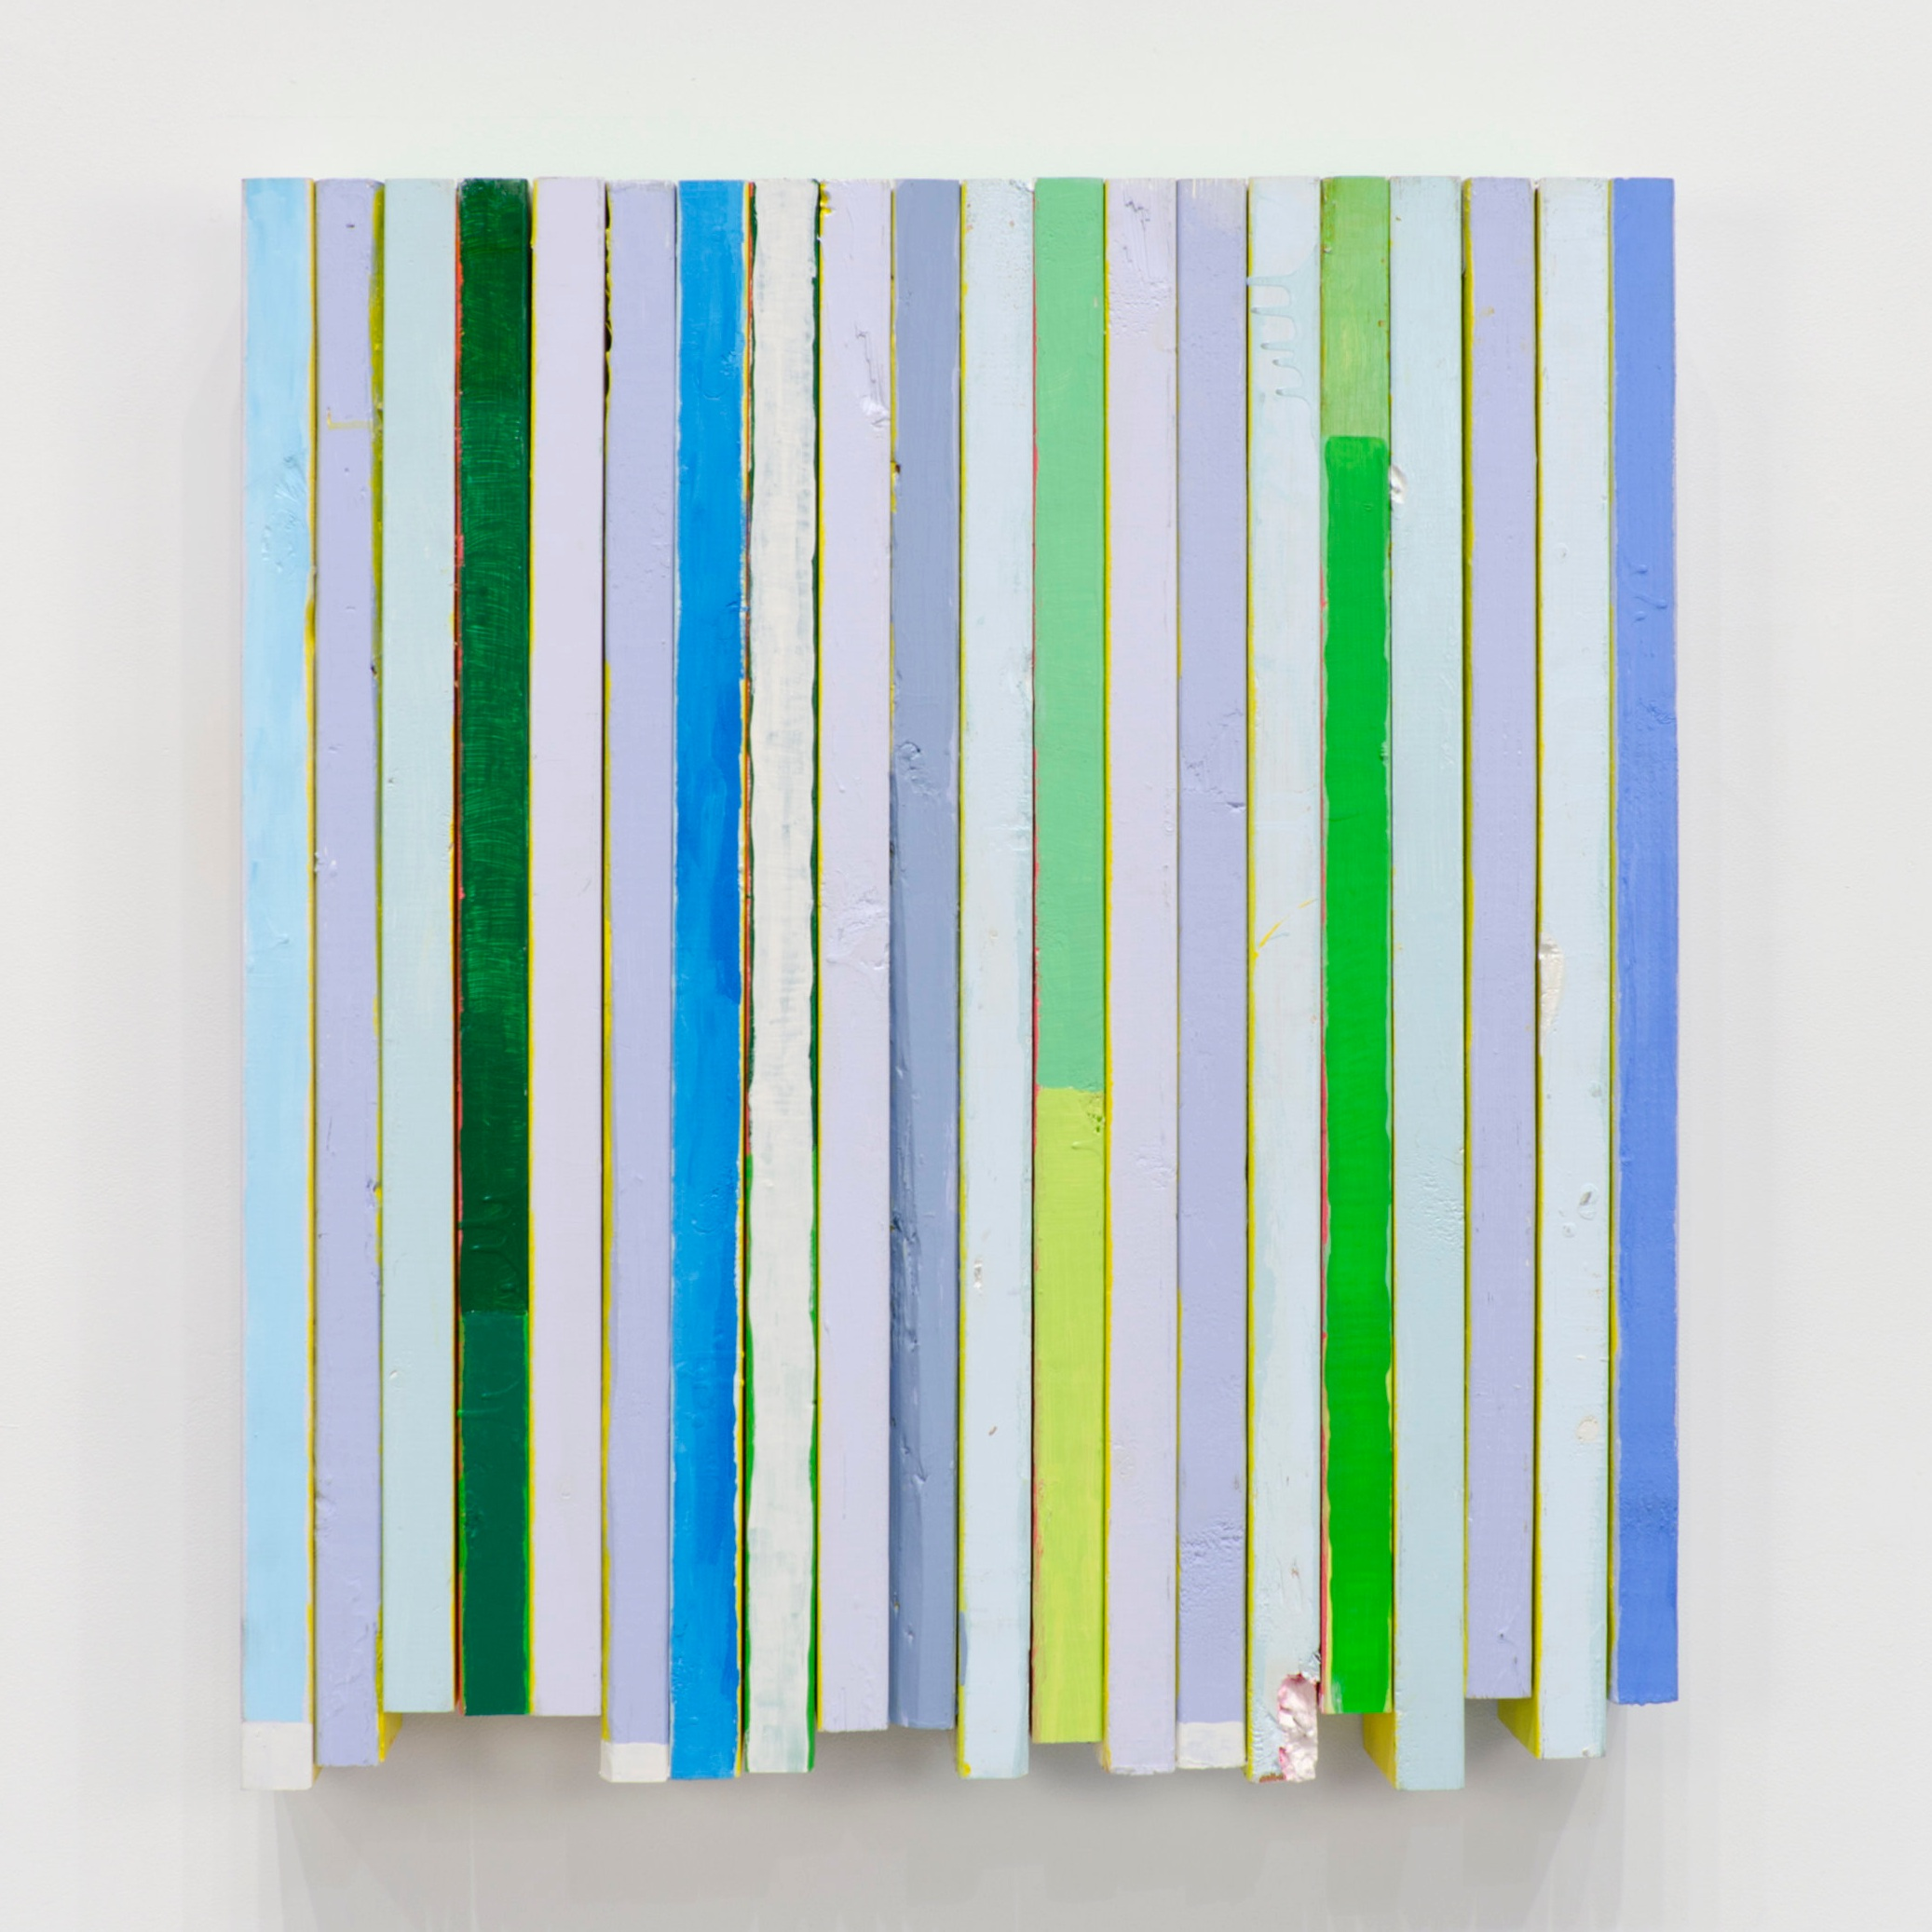 Wave Sandwich No. 2 , 2013  Acrylic on wood  34 x 30 1/2 x 4 inches